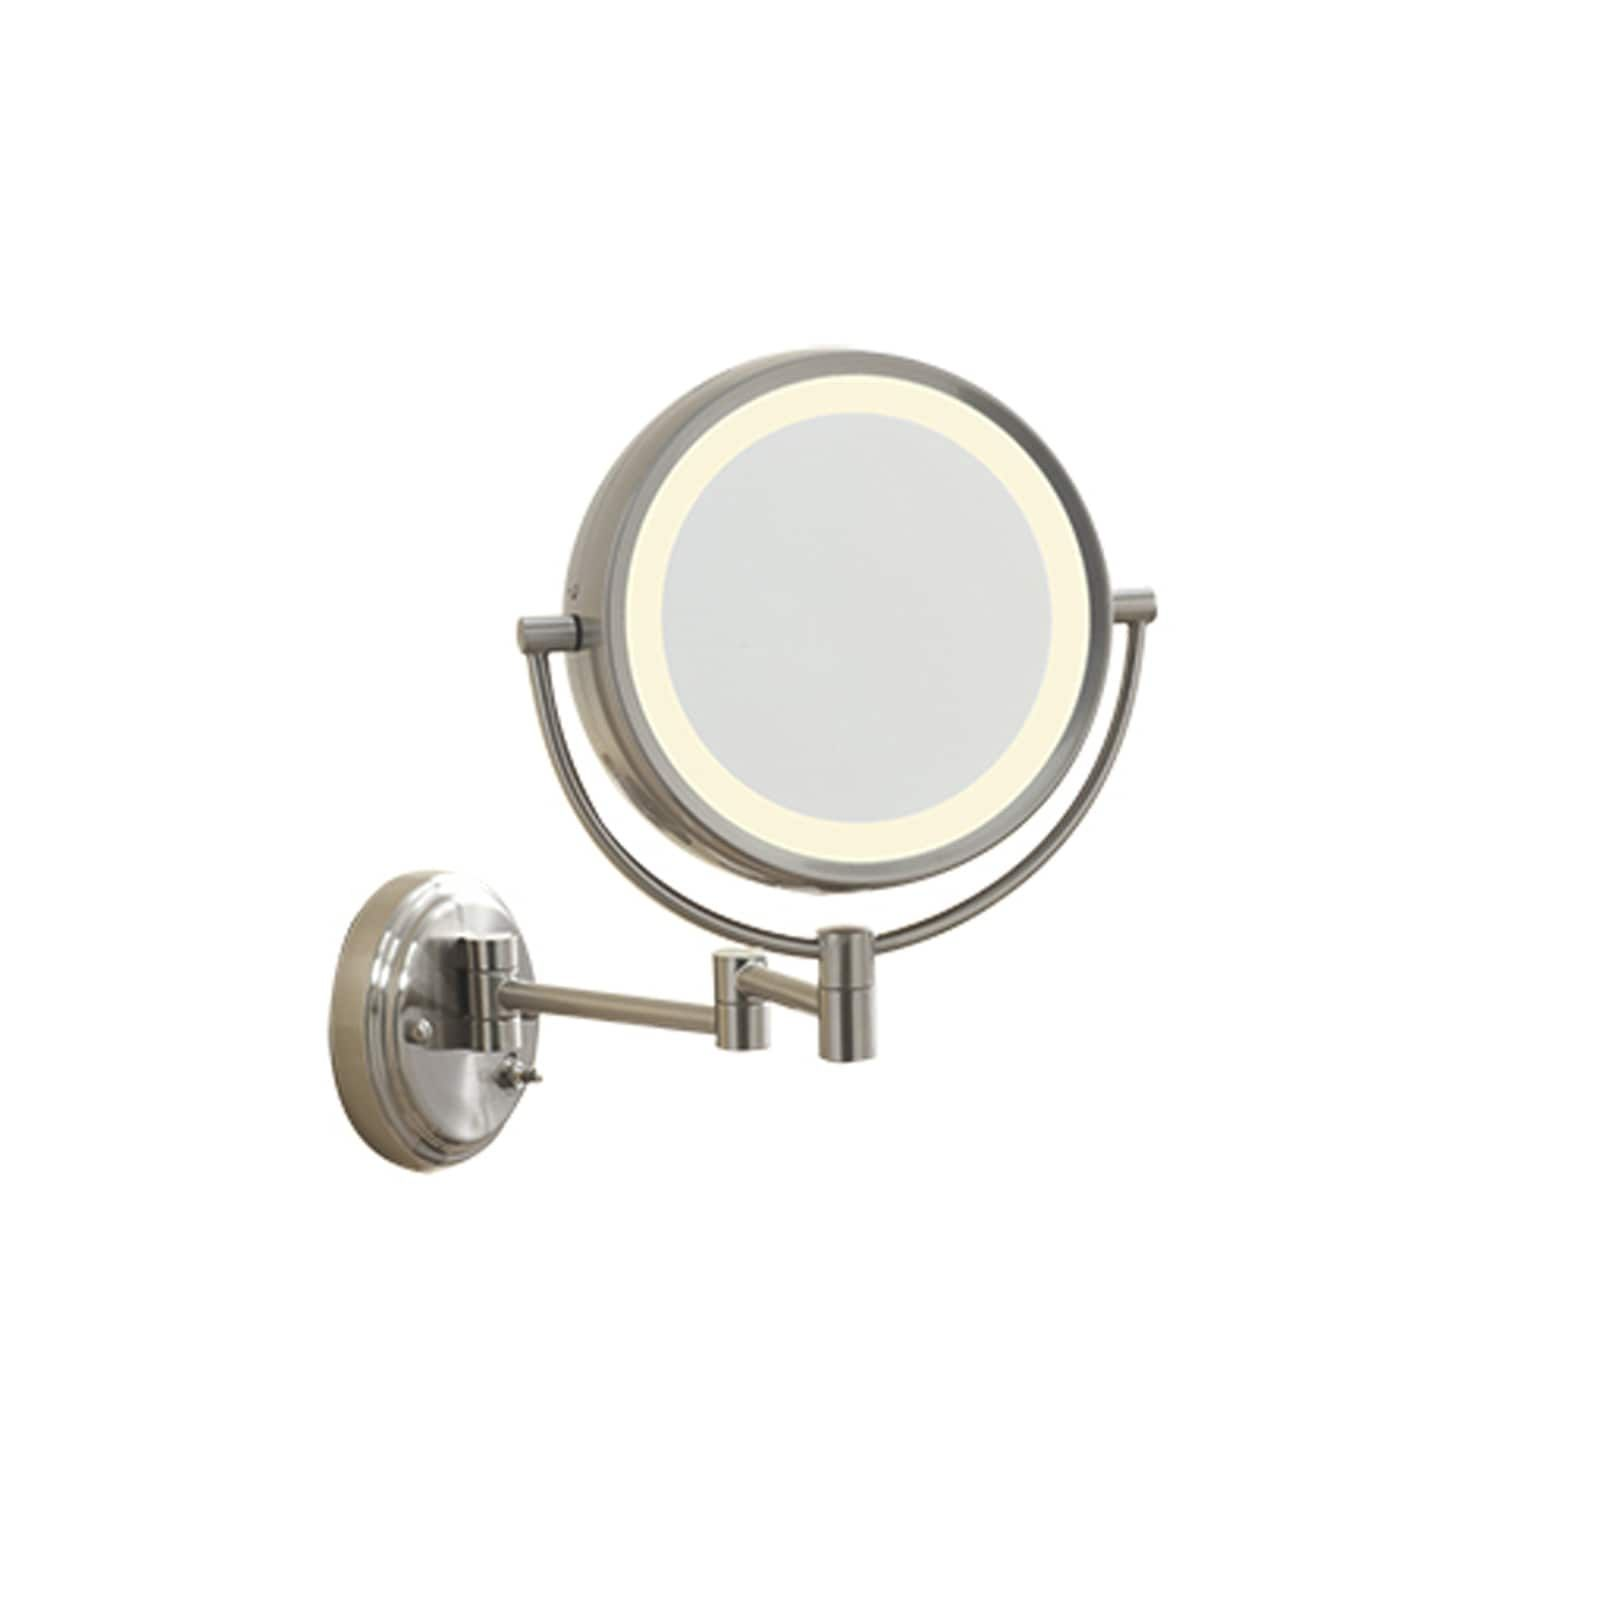 Conair Lighted 7x Brushed Nickel Wall Mount Fluorescent Hotel